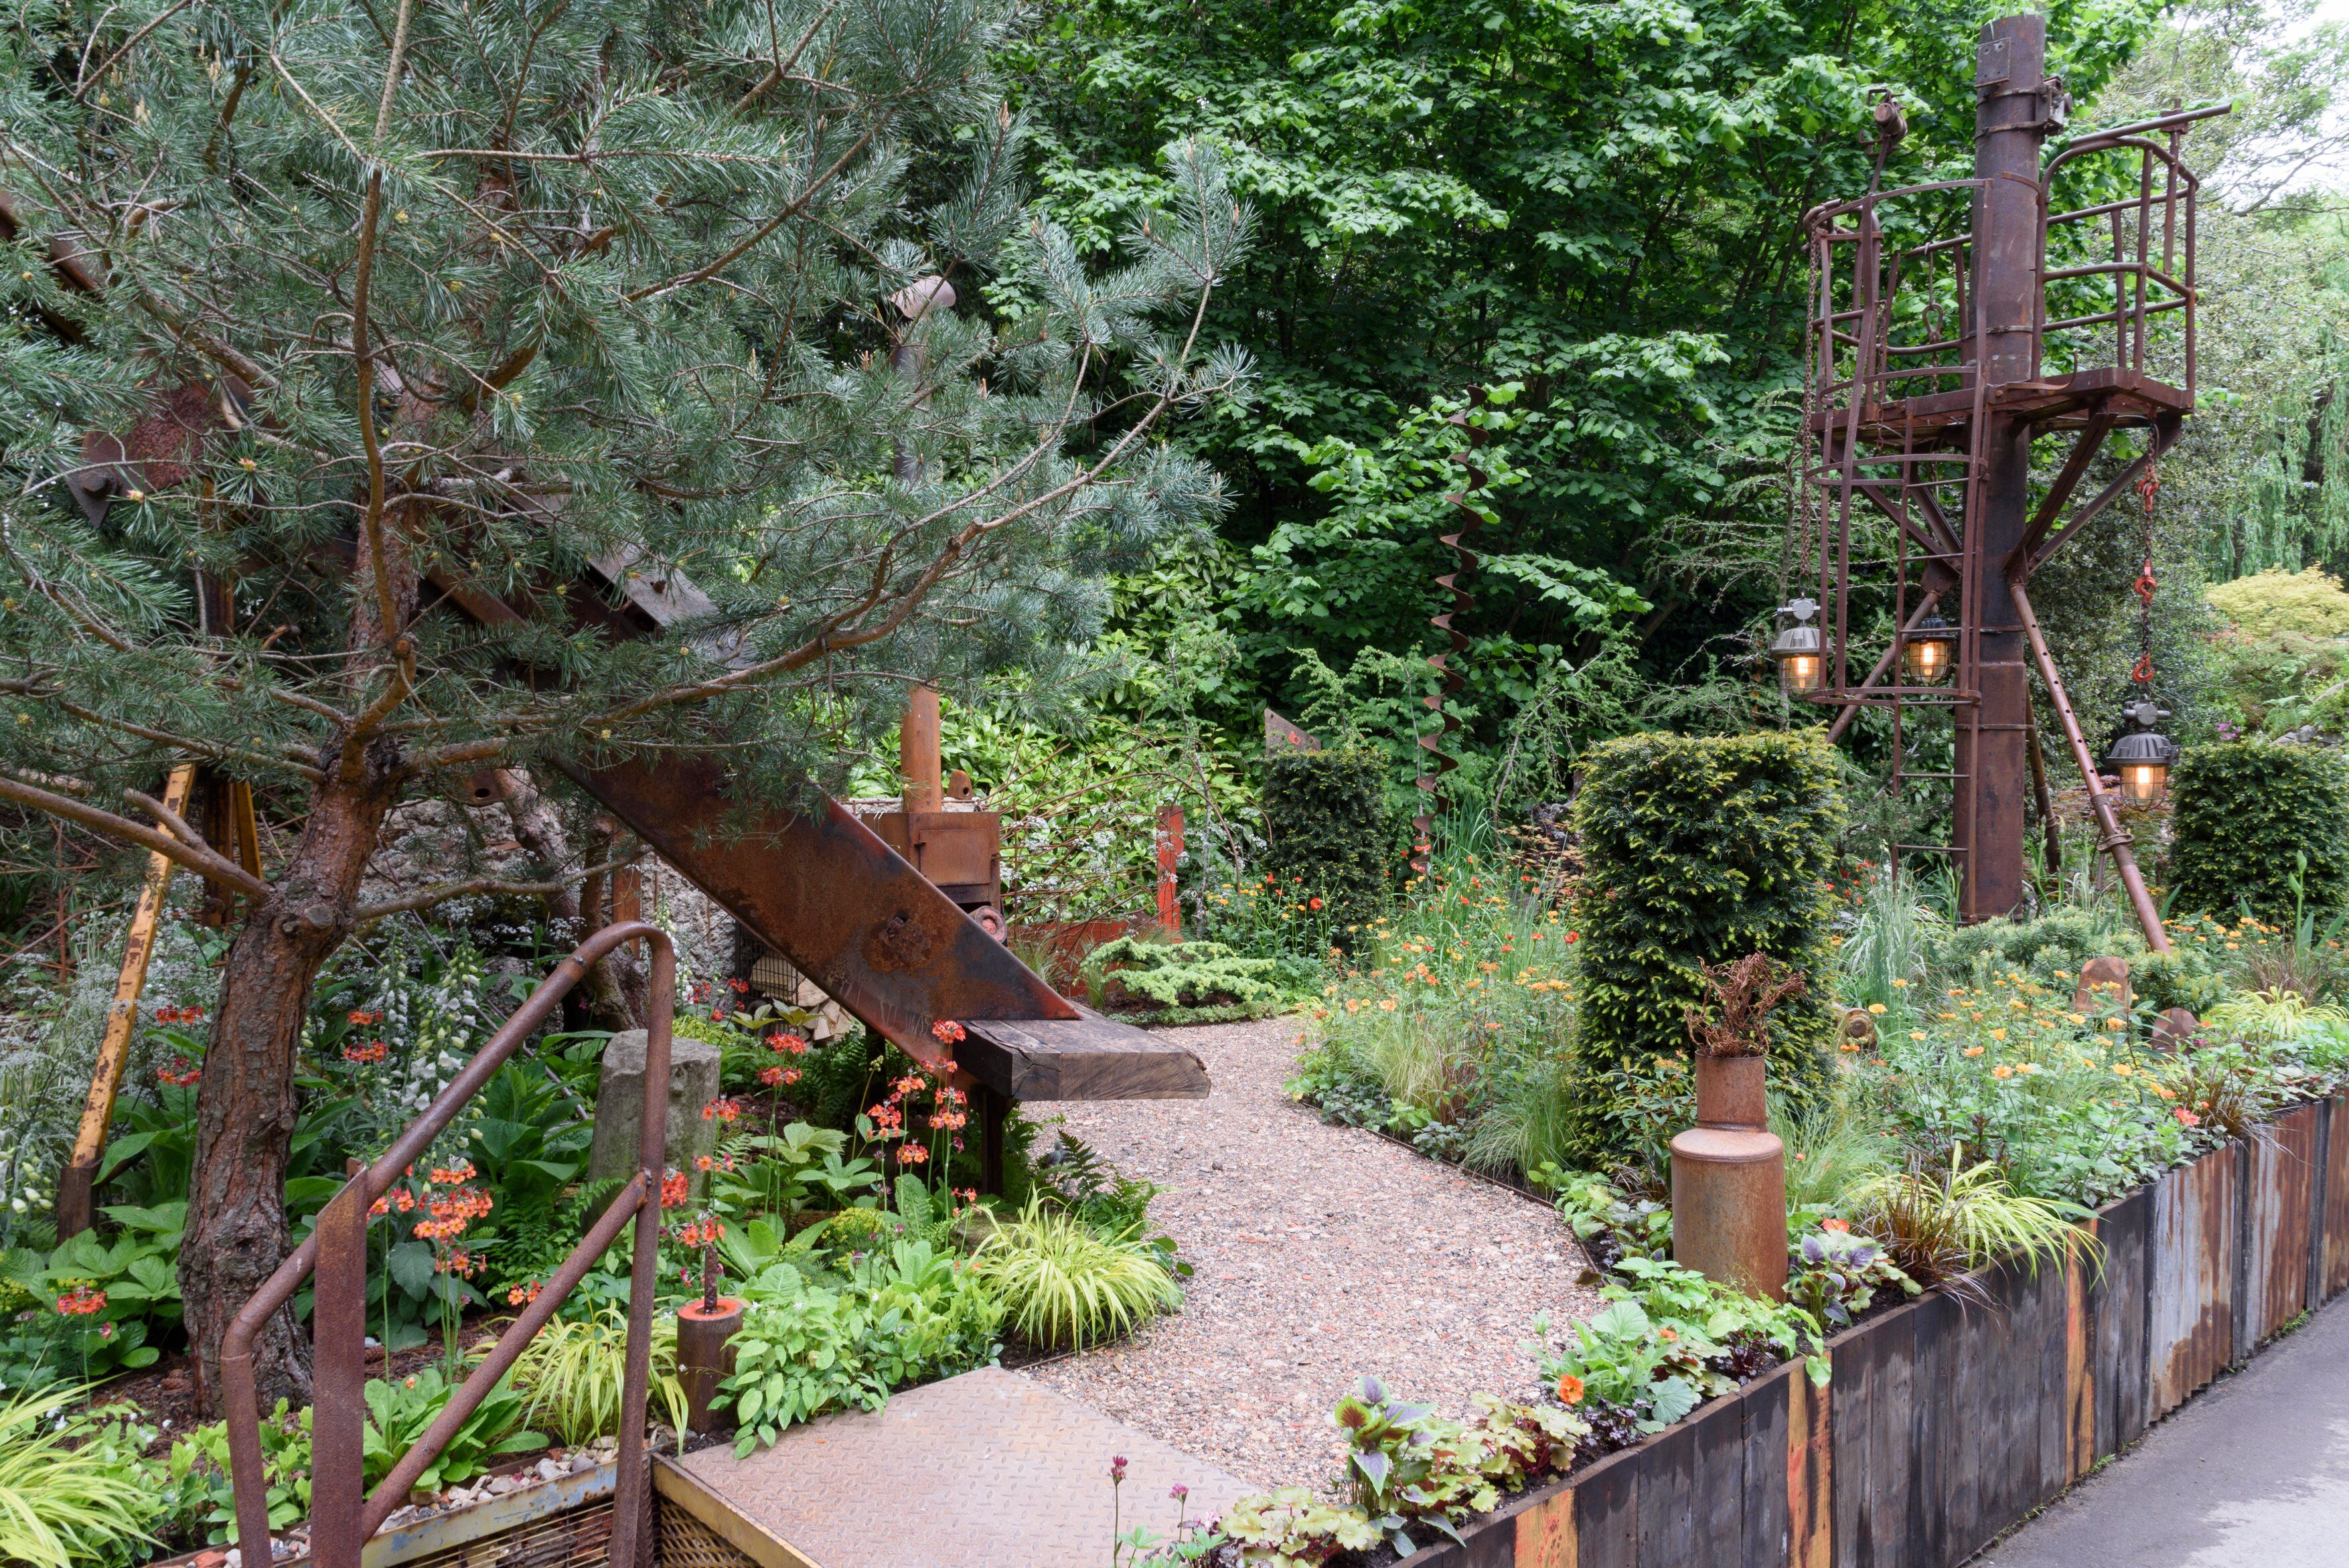 Pin By The Rhs On Rhs Chelsea Flower Show 2019 In 2020 Chelsea